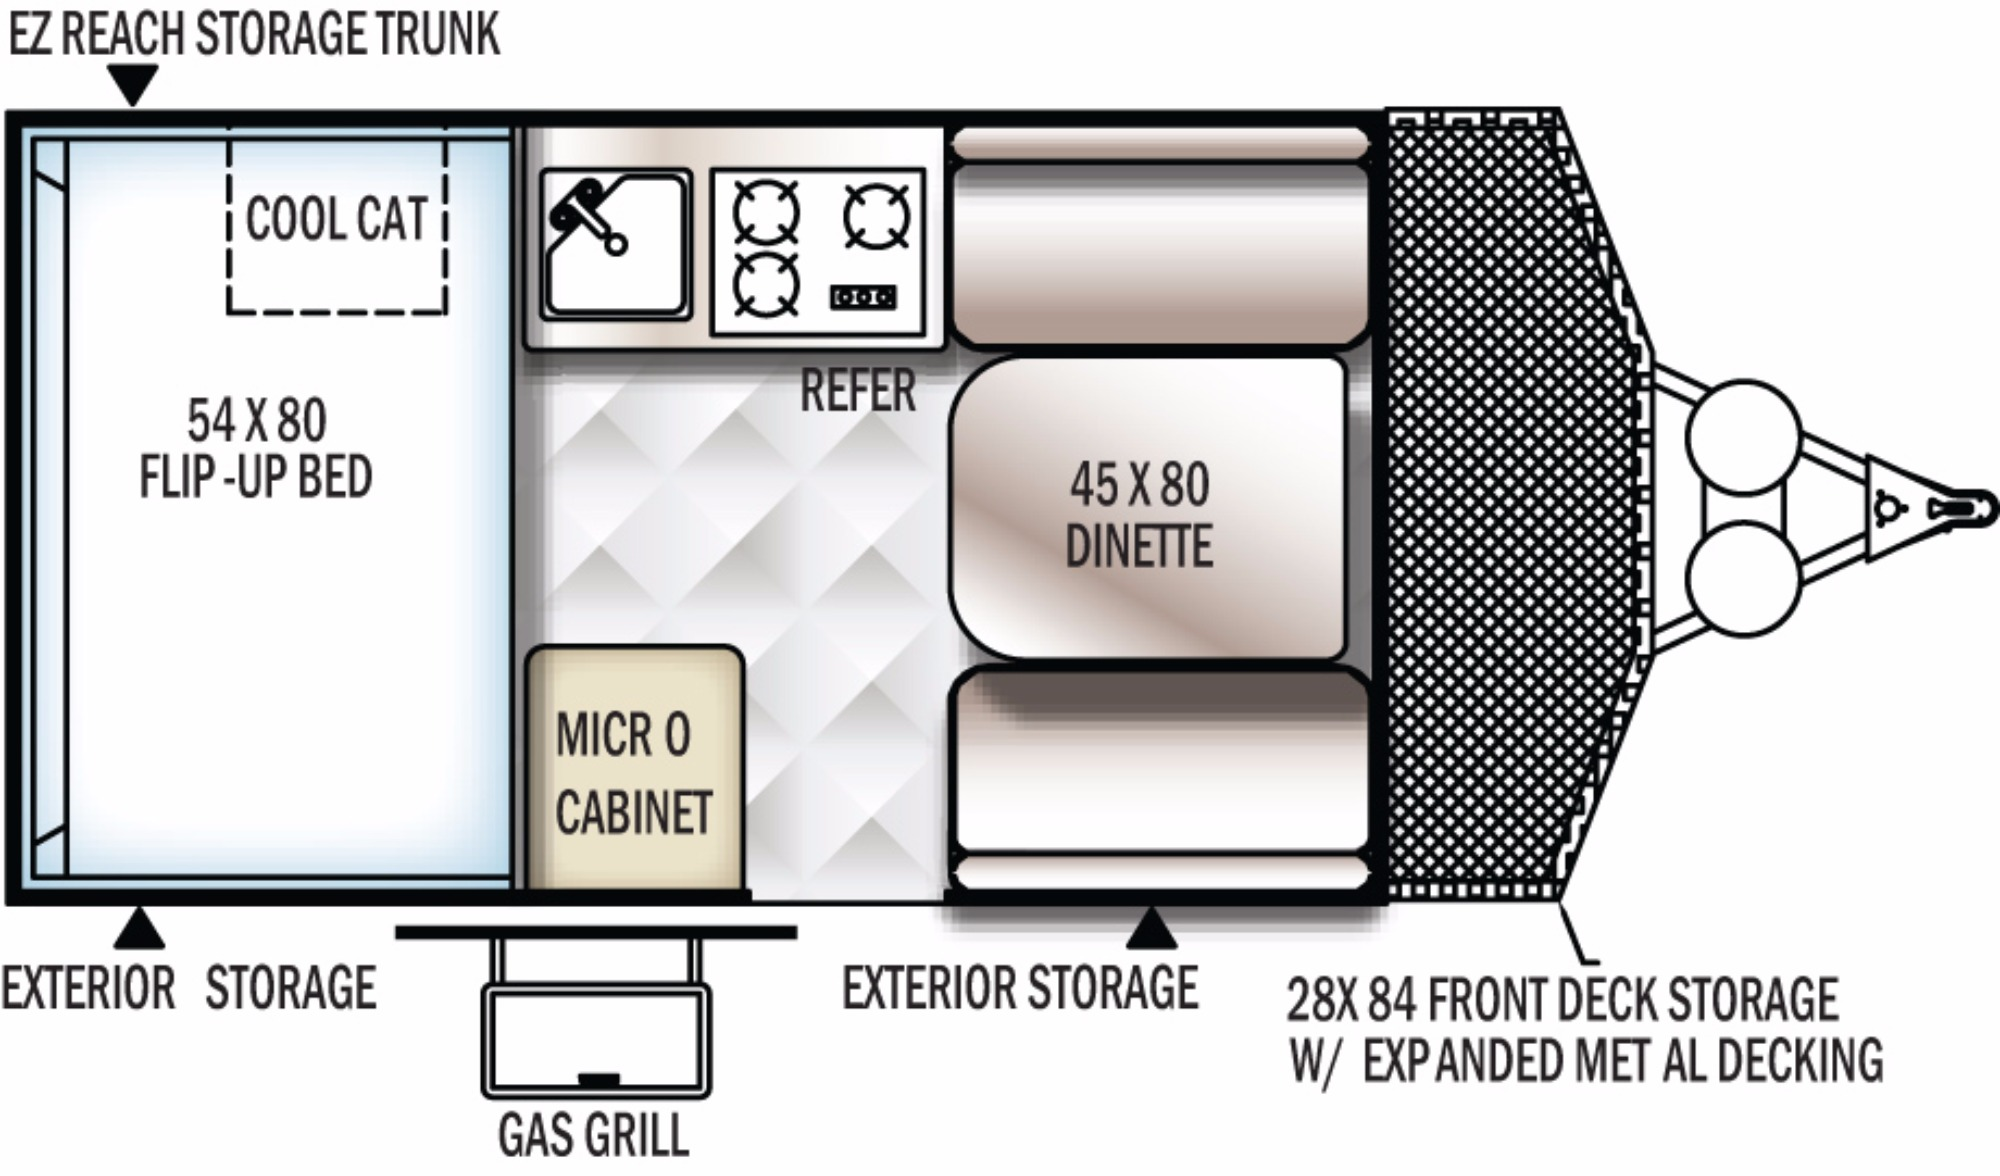 View Floor Plan for 2018 FOREST RIVER ROCKWOOD HARD SIDE A122BH